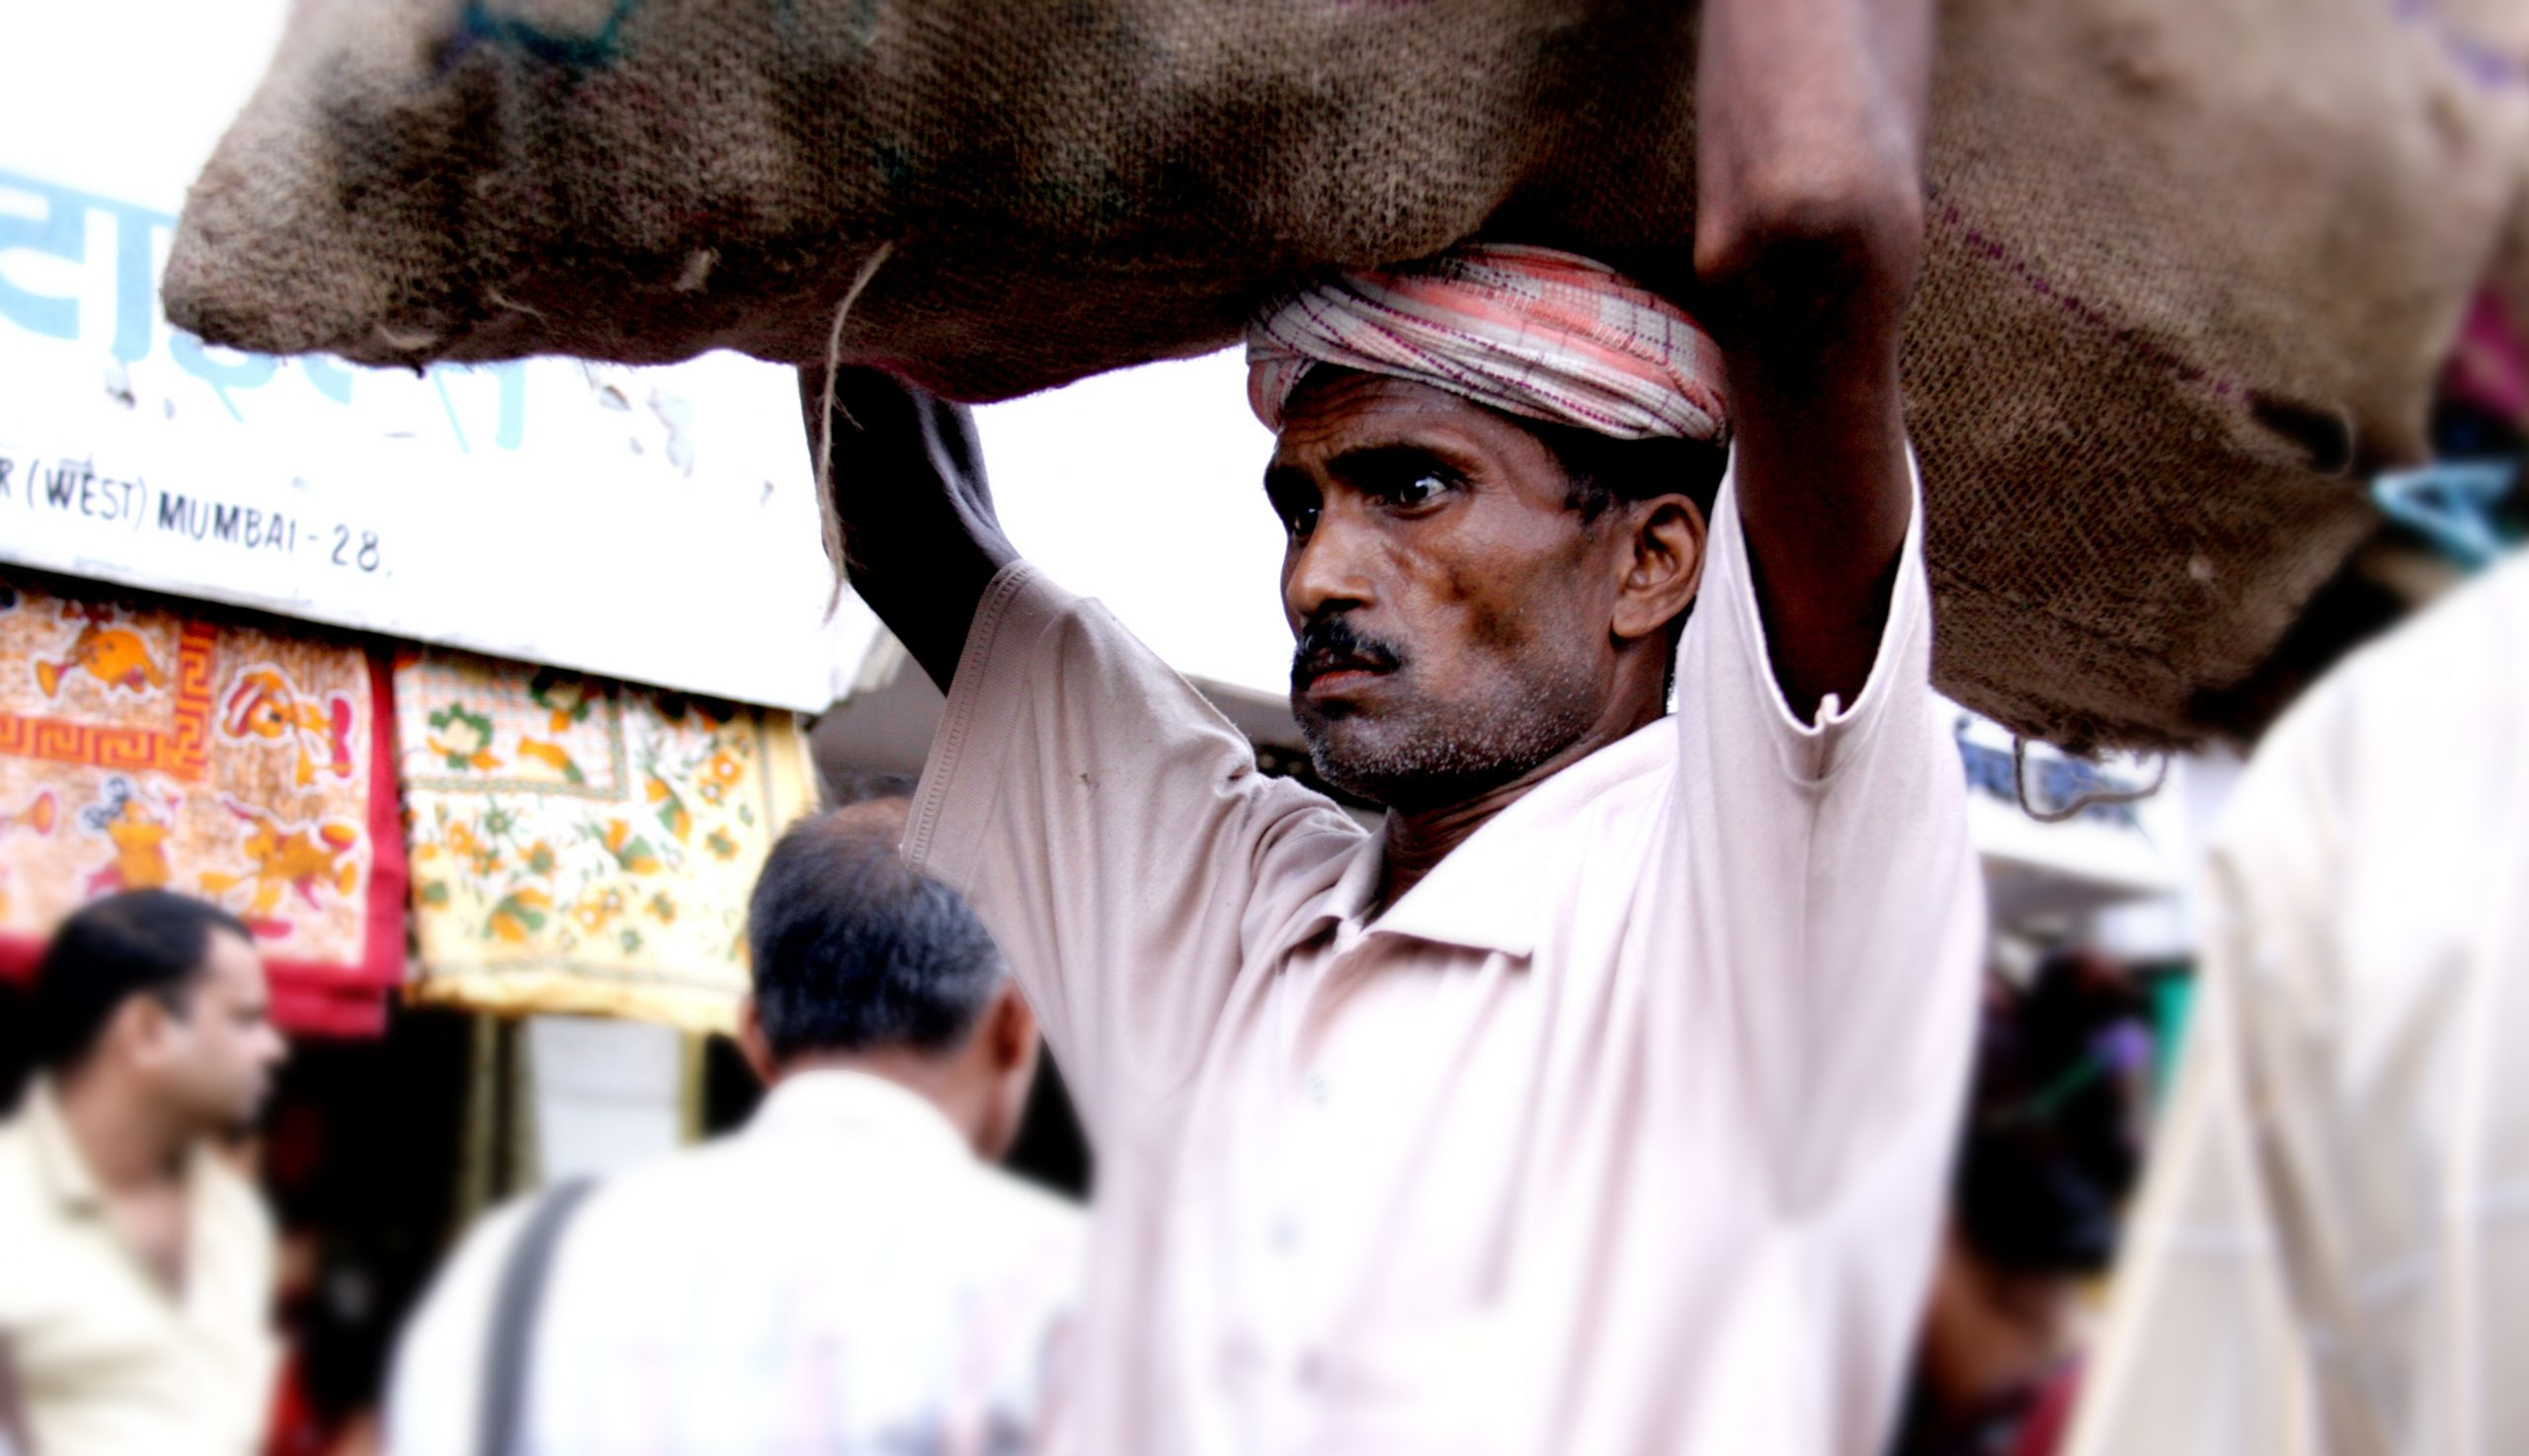 Indian male migrant labourer carrying goods on his head